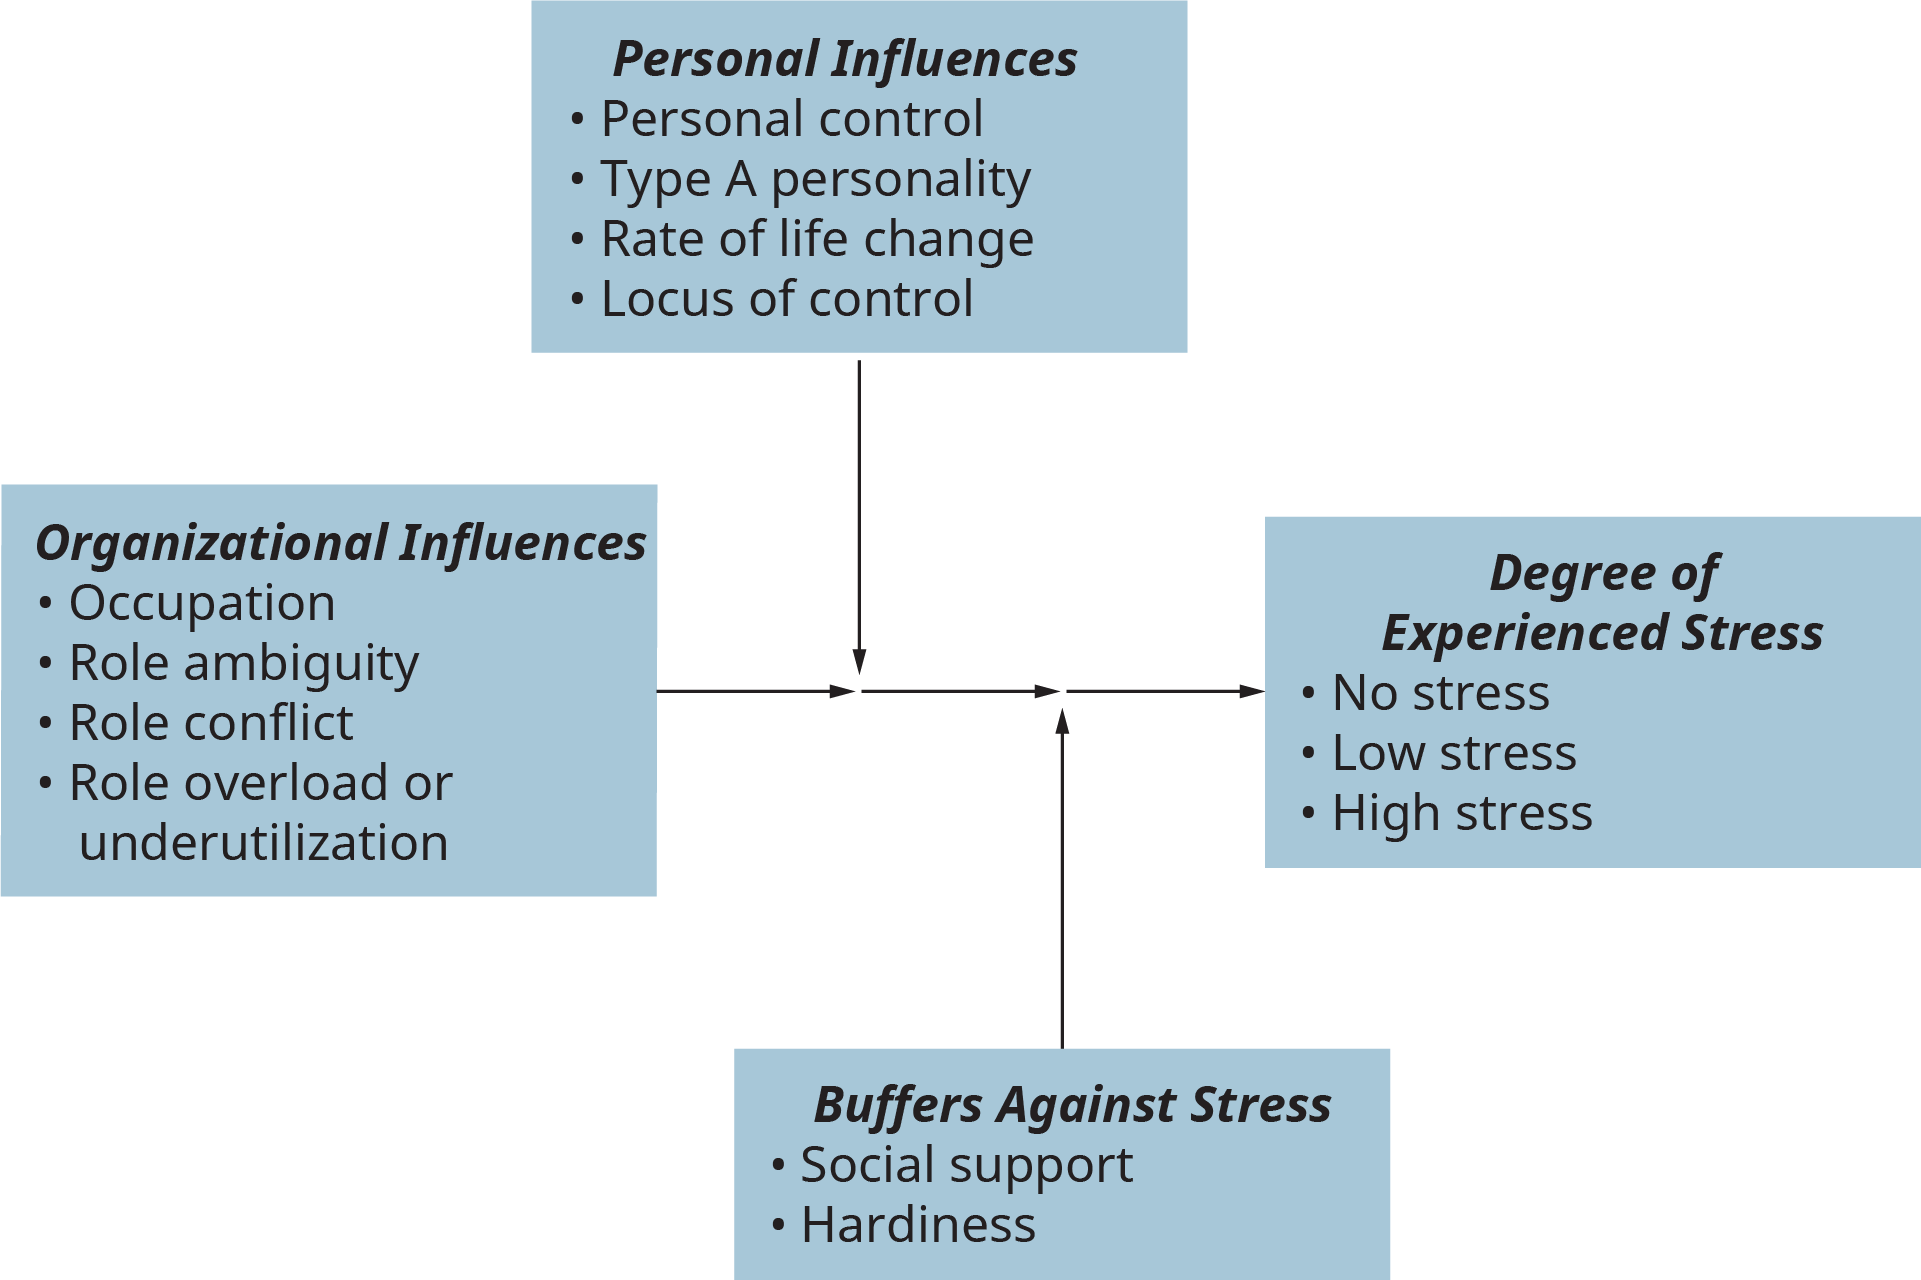 An illustration depicts the major influences on job-related stress, buffering effects on work-related stress, and the degree of experienced stress.